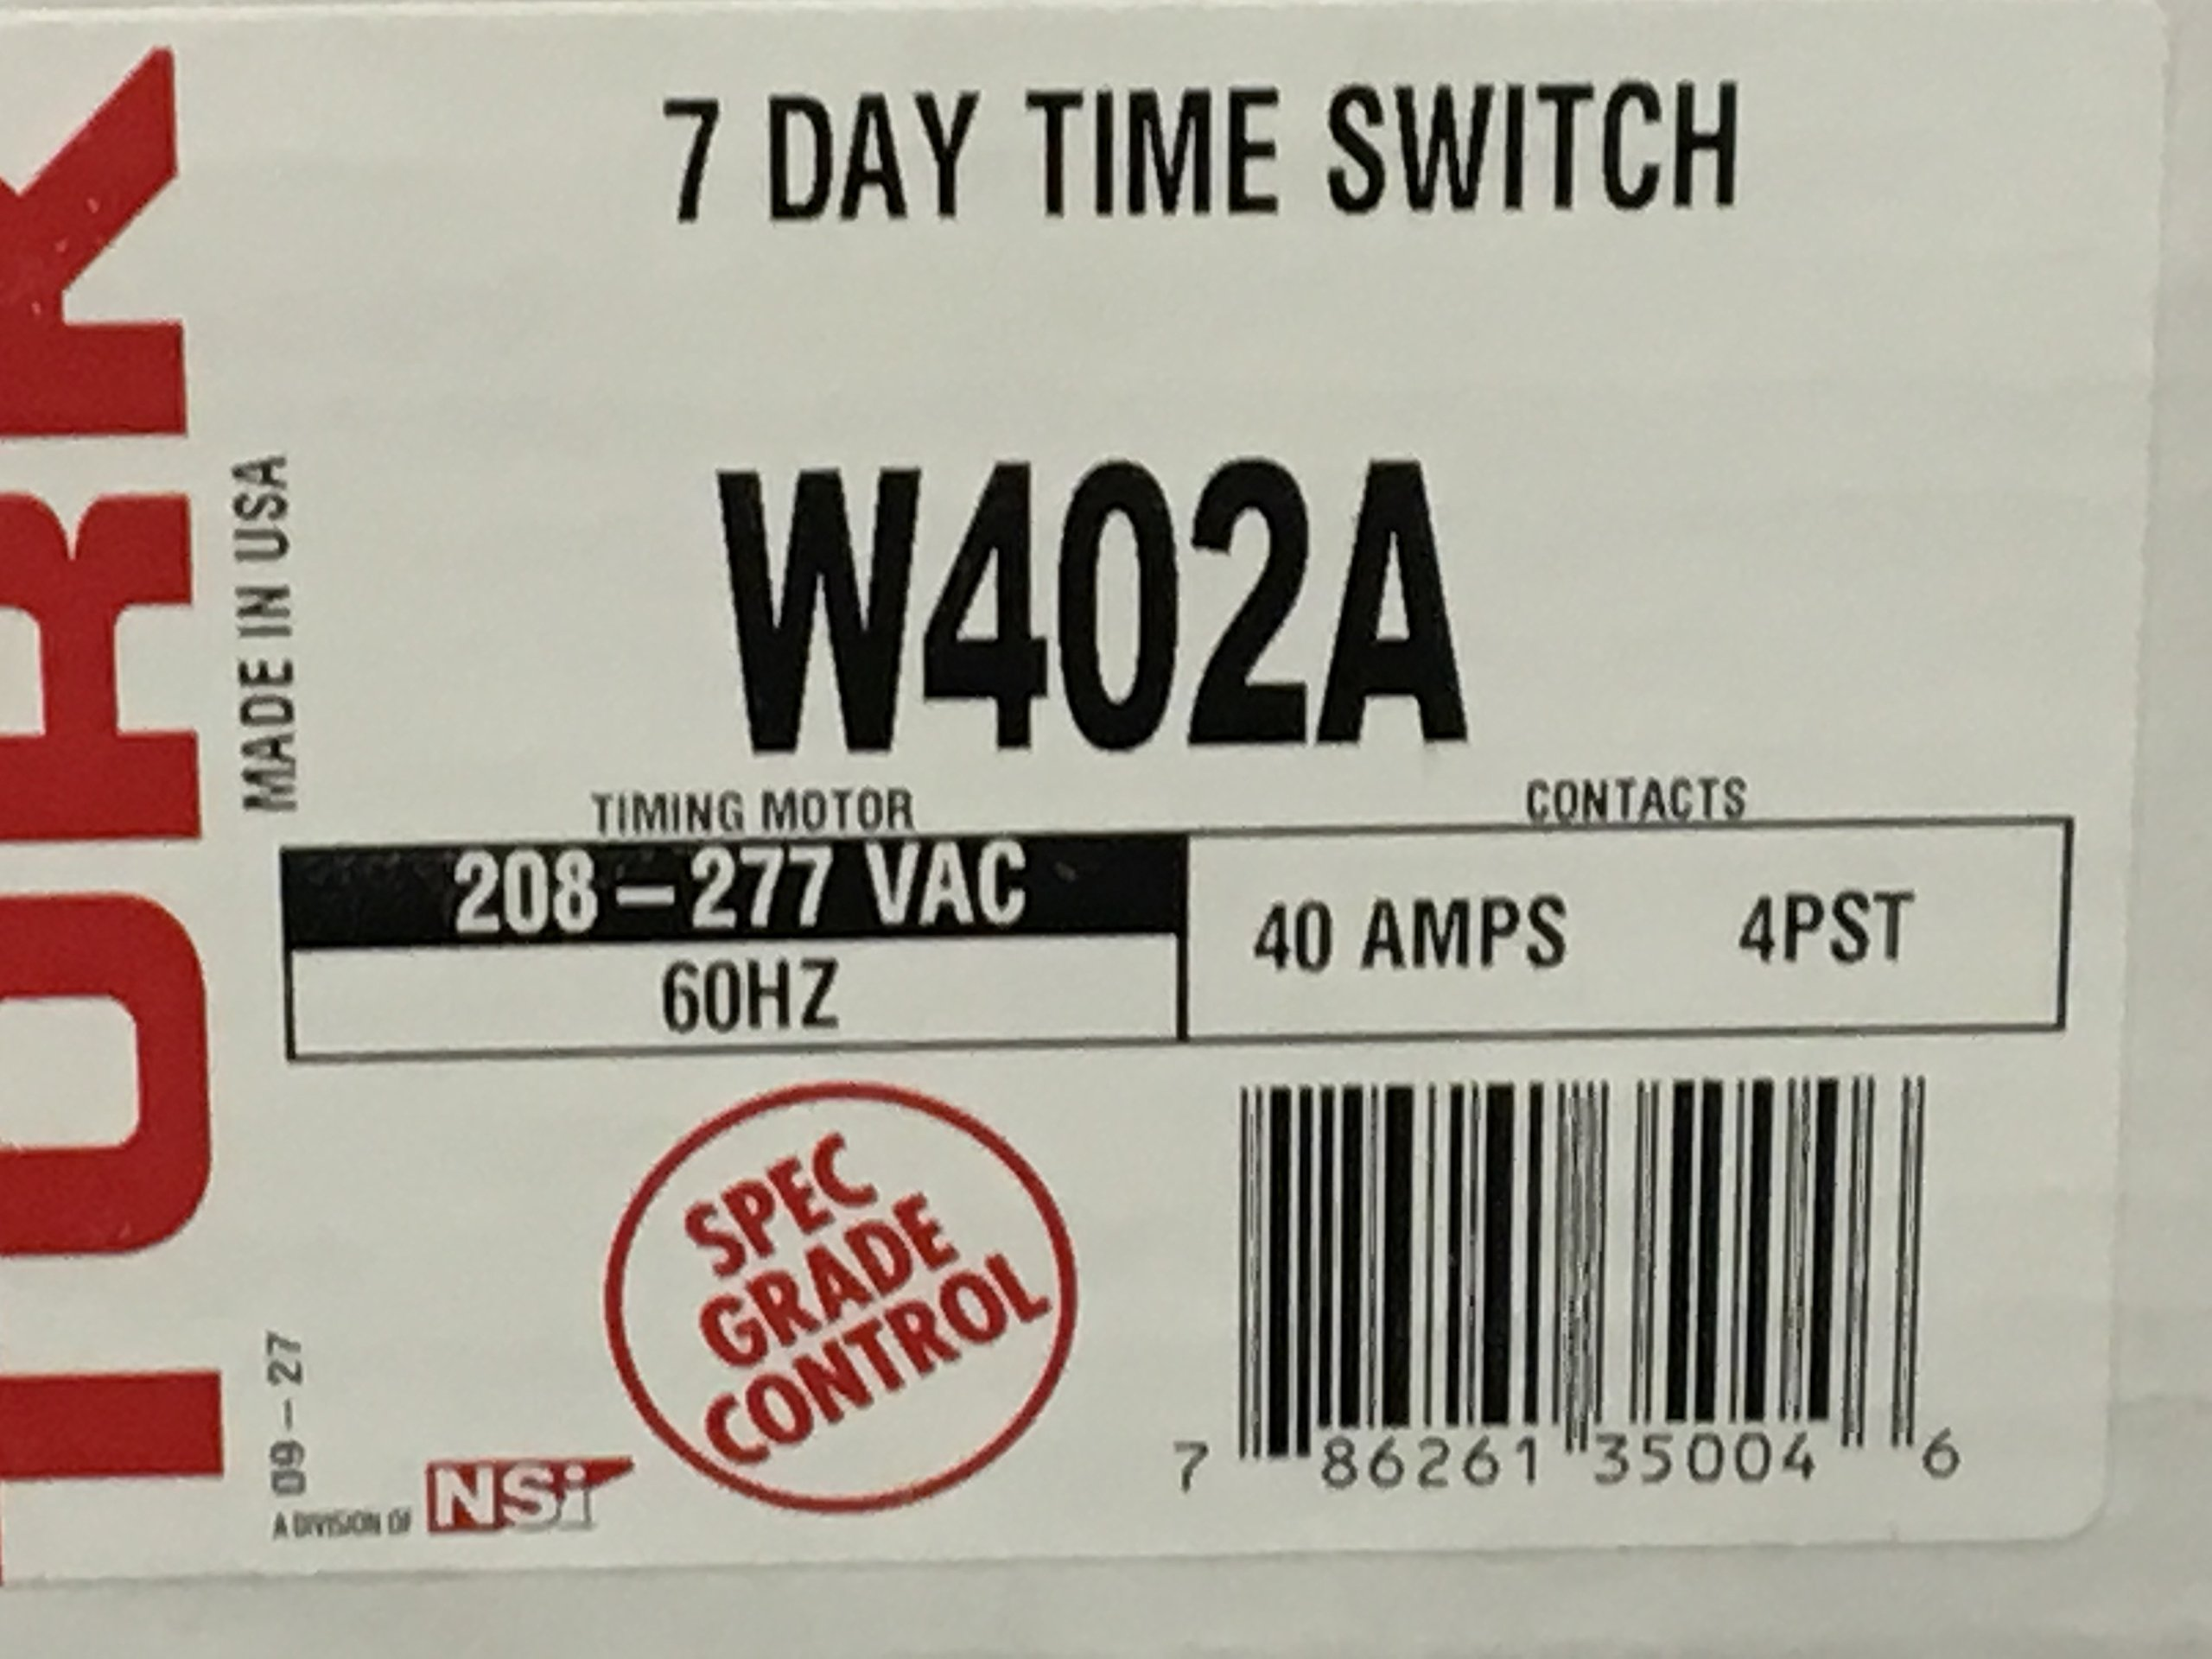 1- NSI TORK W402A W-Series Different Schedules Each Day 7 Day Time Switch, Metal Indoor NEMA 1, 208-277 Input Supply, 4PST Output Contact